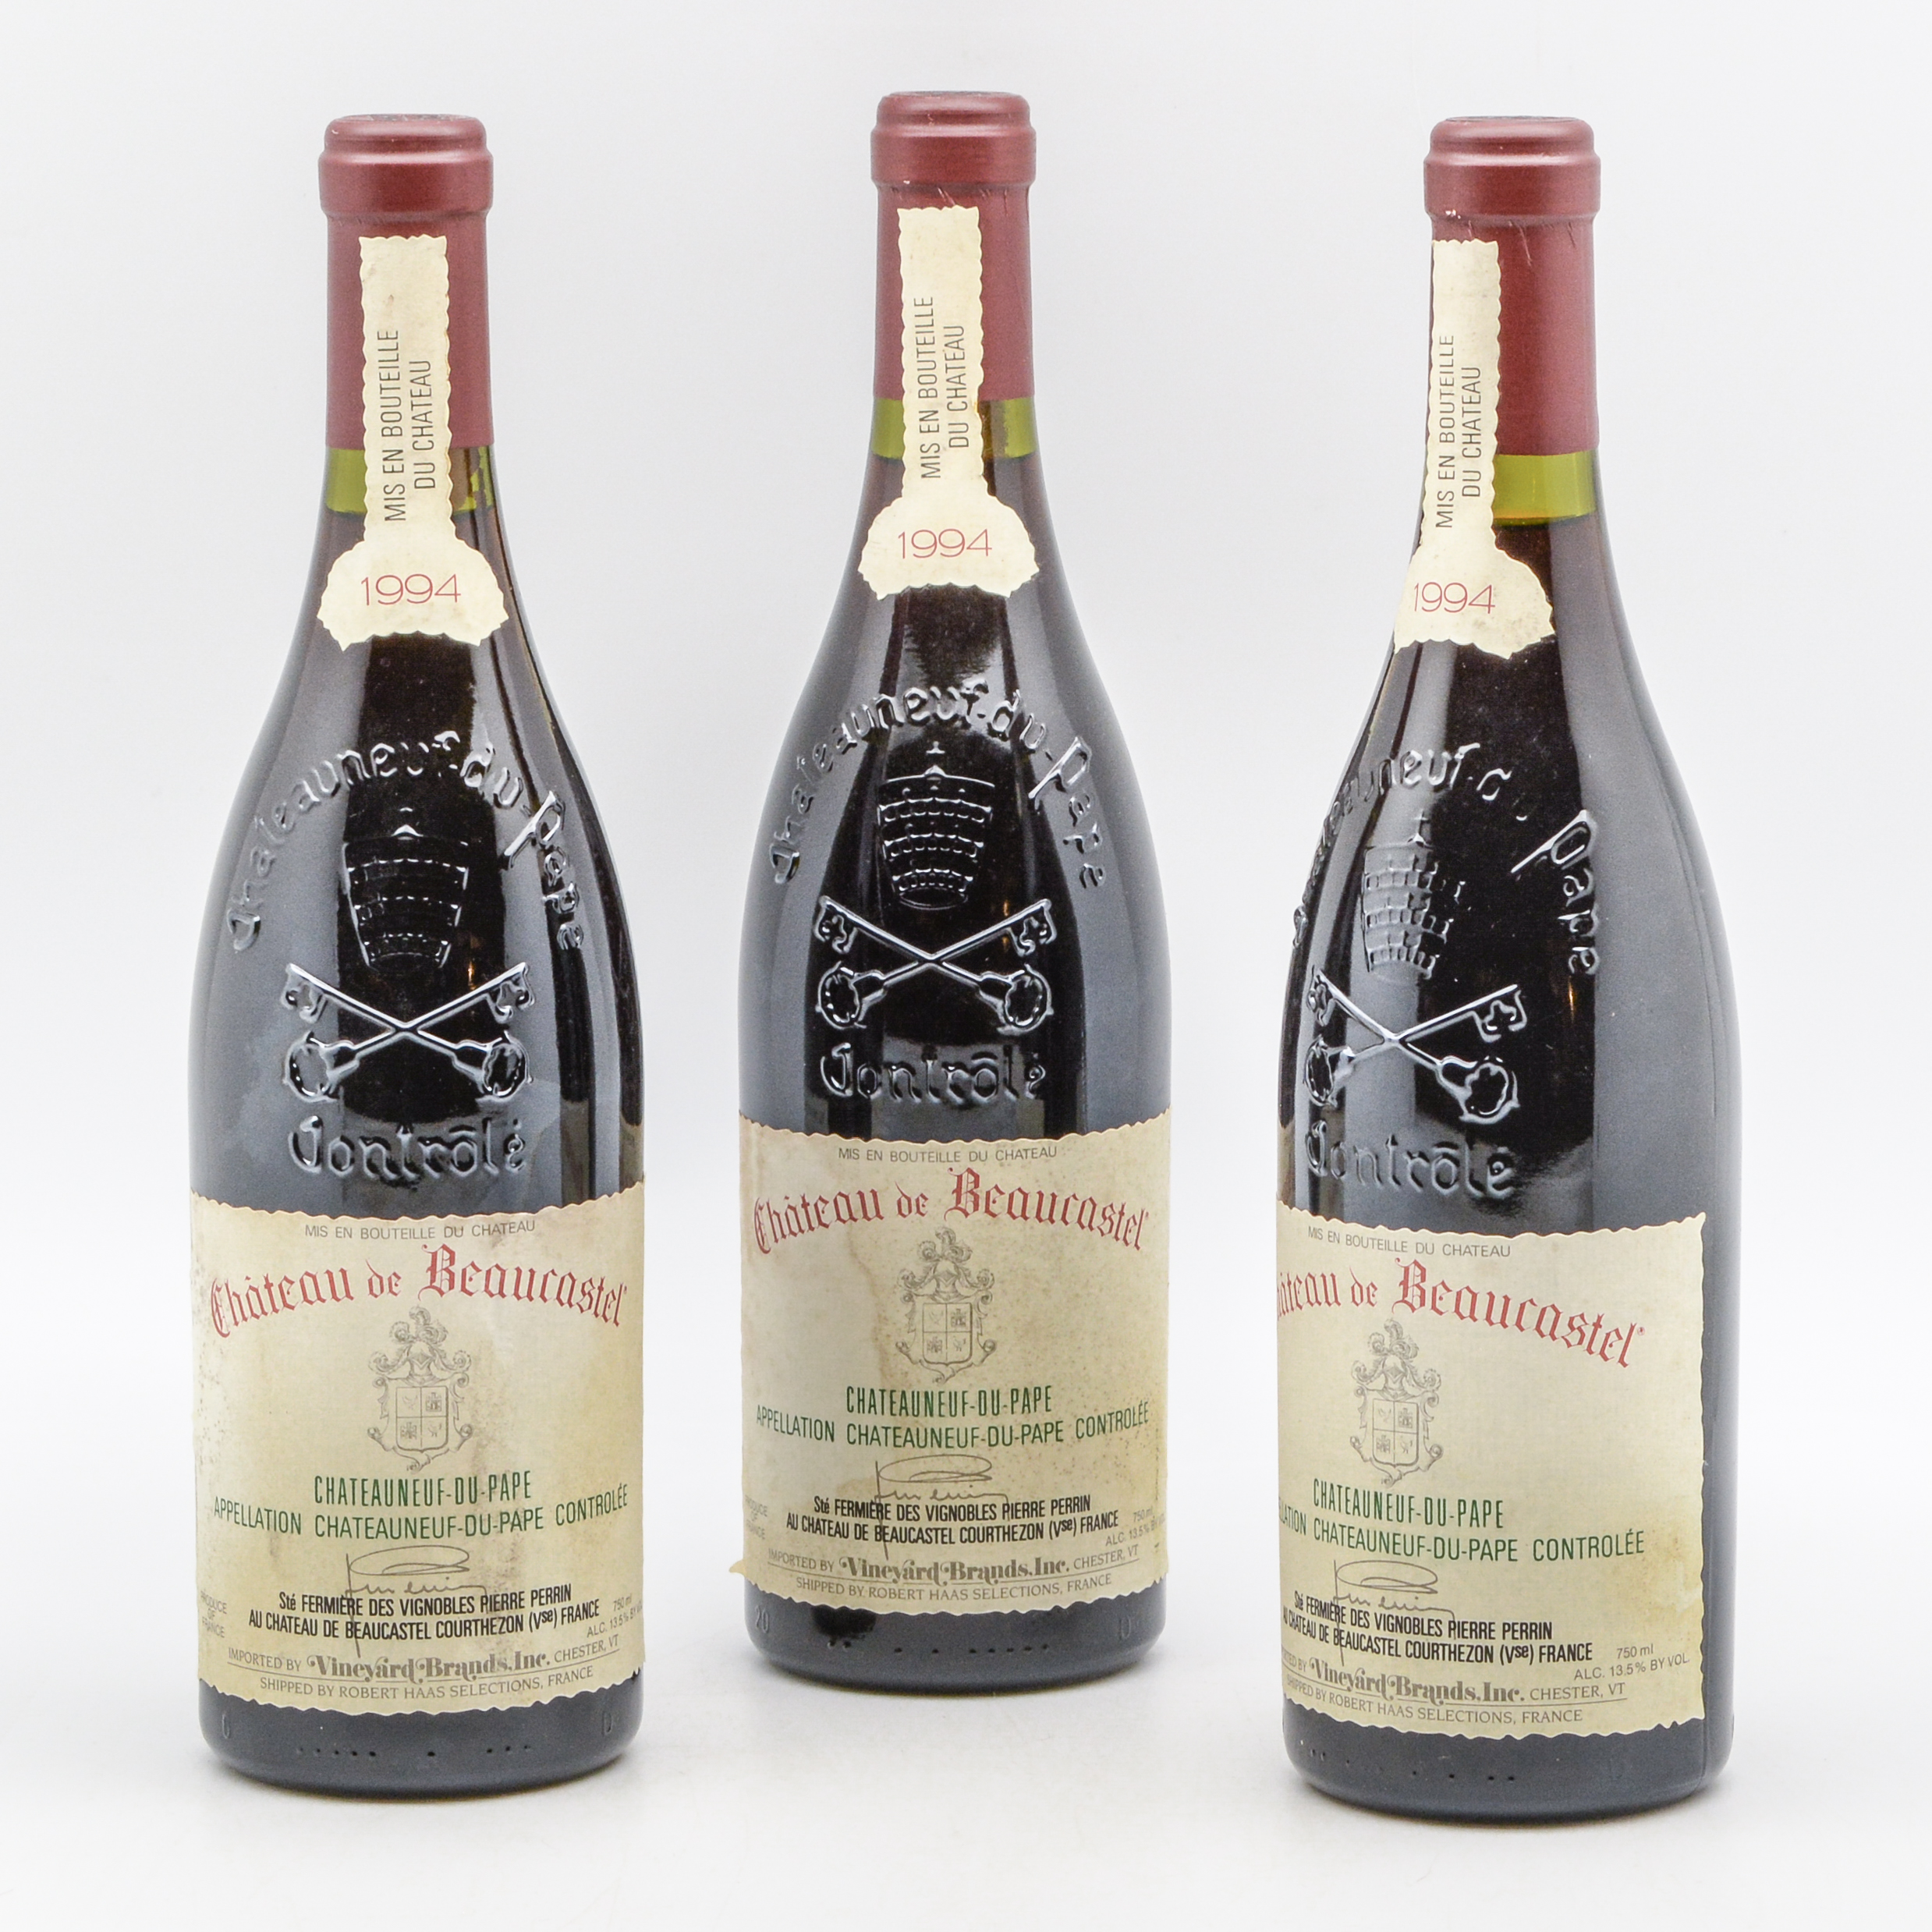 Chateau Beaucastel Chateauneuf du Pape 1994, 3 bottles (Lot 1236, Estimate: $120-180)